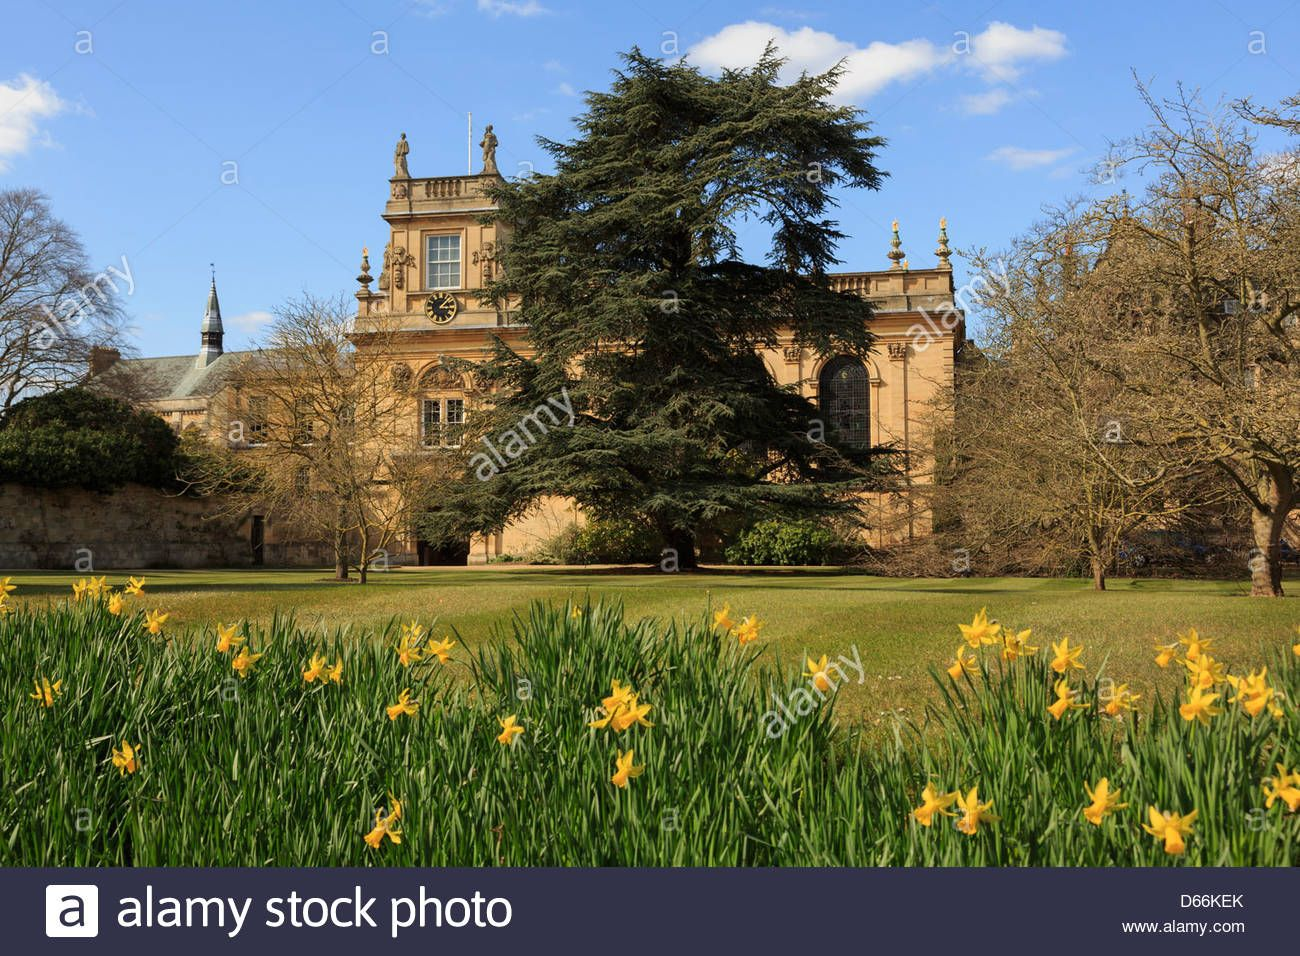 Daffodils In Trinity College Front Quadrangle Garden With